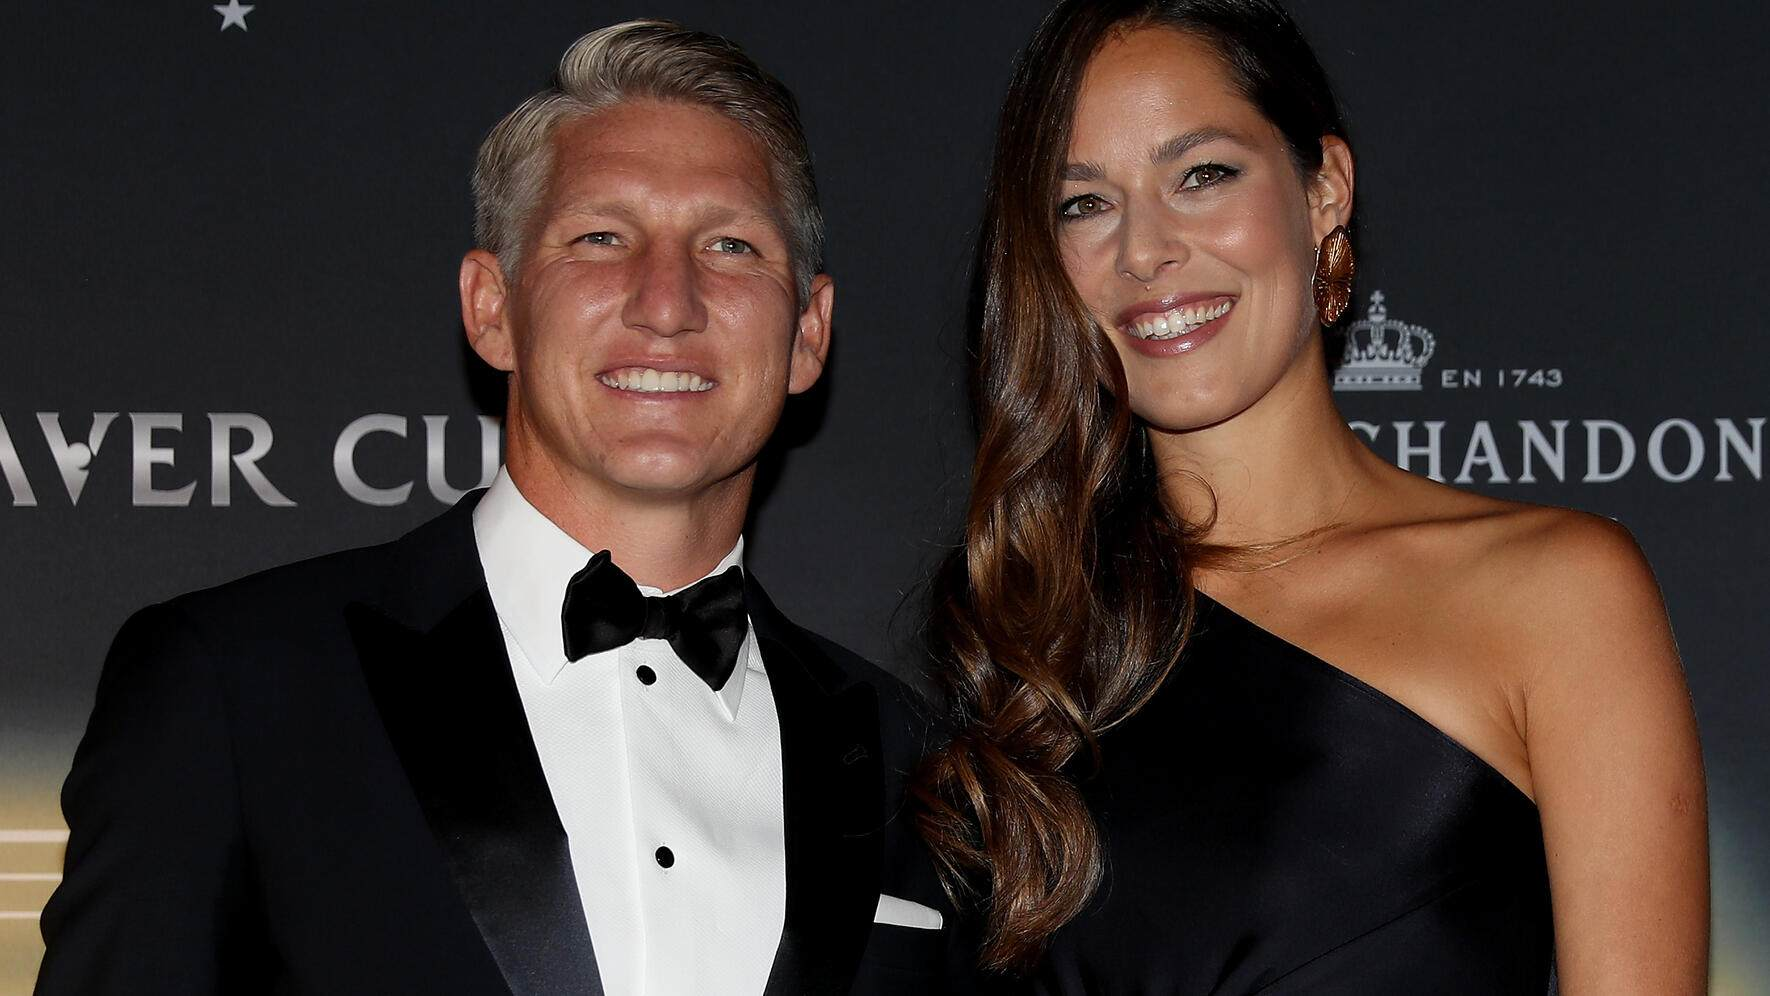 CHICAGO, IL - SEPTEMBER 20:  Bastian Schweinsteiger and Ana Ivanovic of Serbia arrive on the Black Carpet during the Laver Cup Gala at the Navy Pier Ballroom on September 20, 2018 in Chicago, Illinois. The Laver Cup consists of six players from Team World competing against their counterparts from Team Europe. John McEnroe will captain Team World and Team Europe will be captained by Bjorn Borg. The event runs from 21-23 Sept.  (Photo by Matthew Stockman/Getty Images for The Laver Cup)